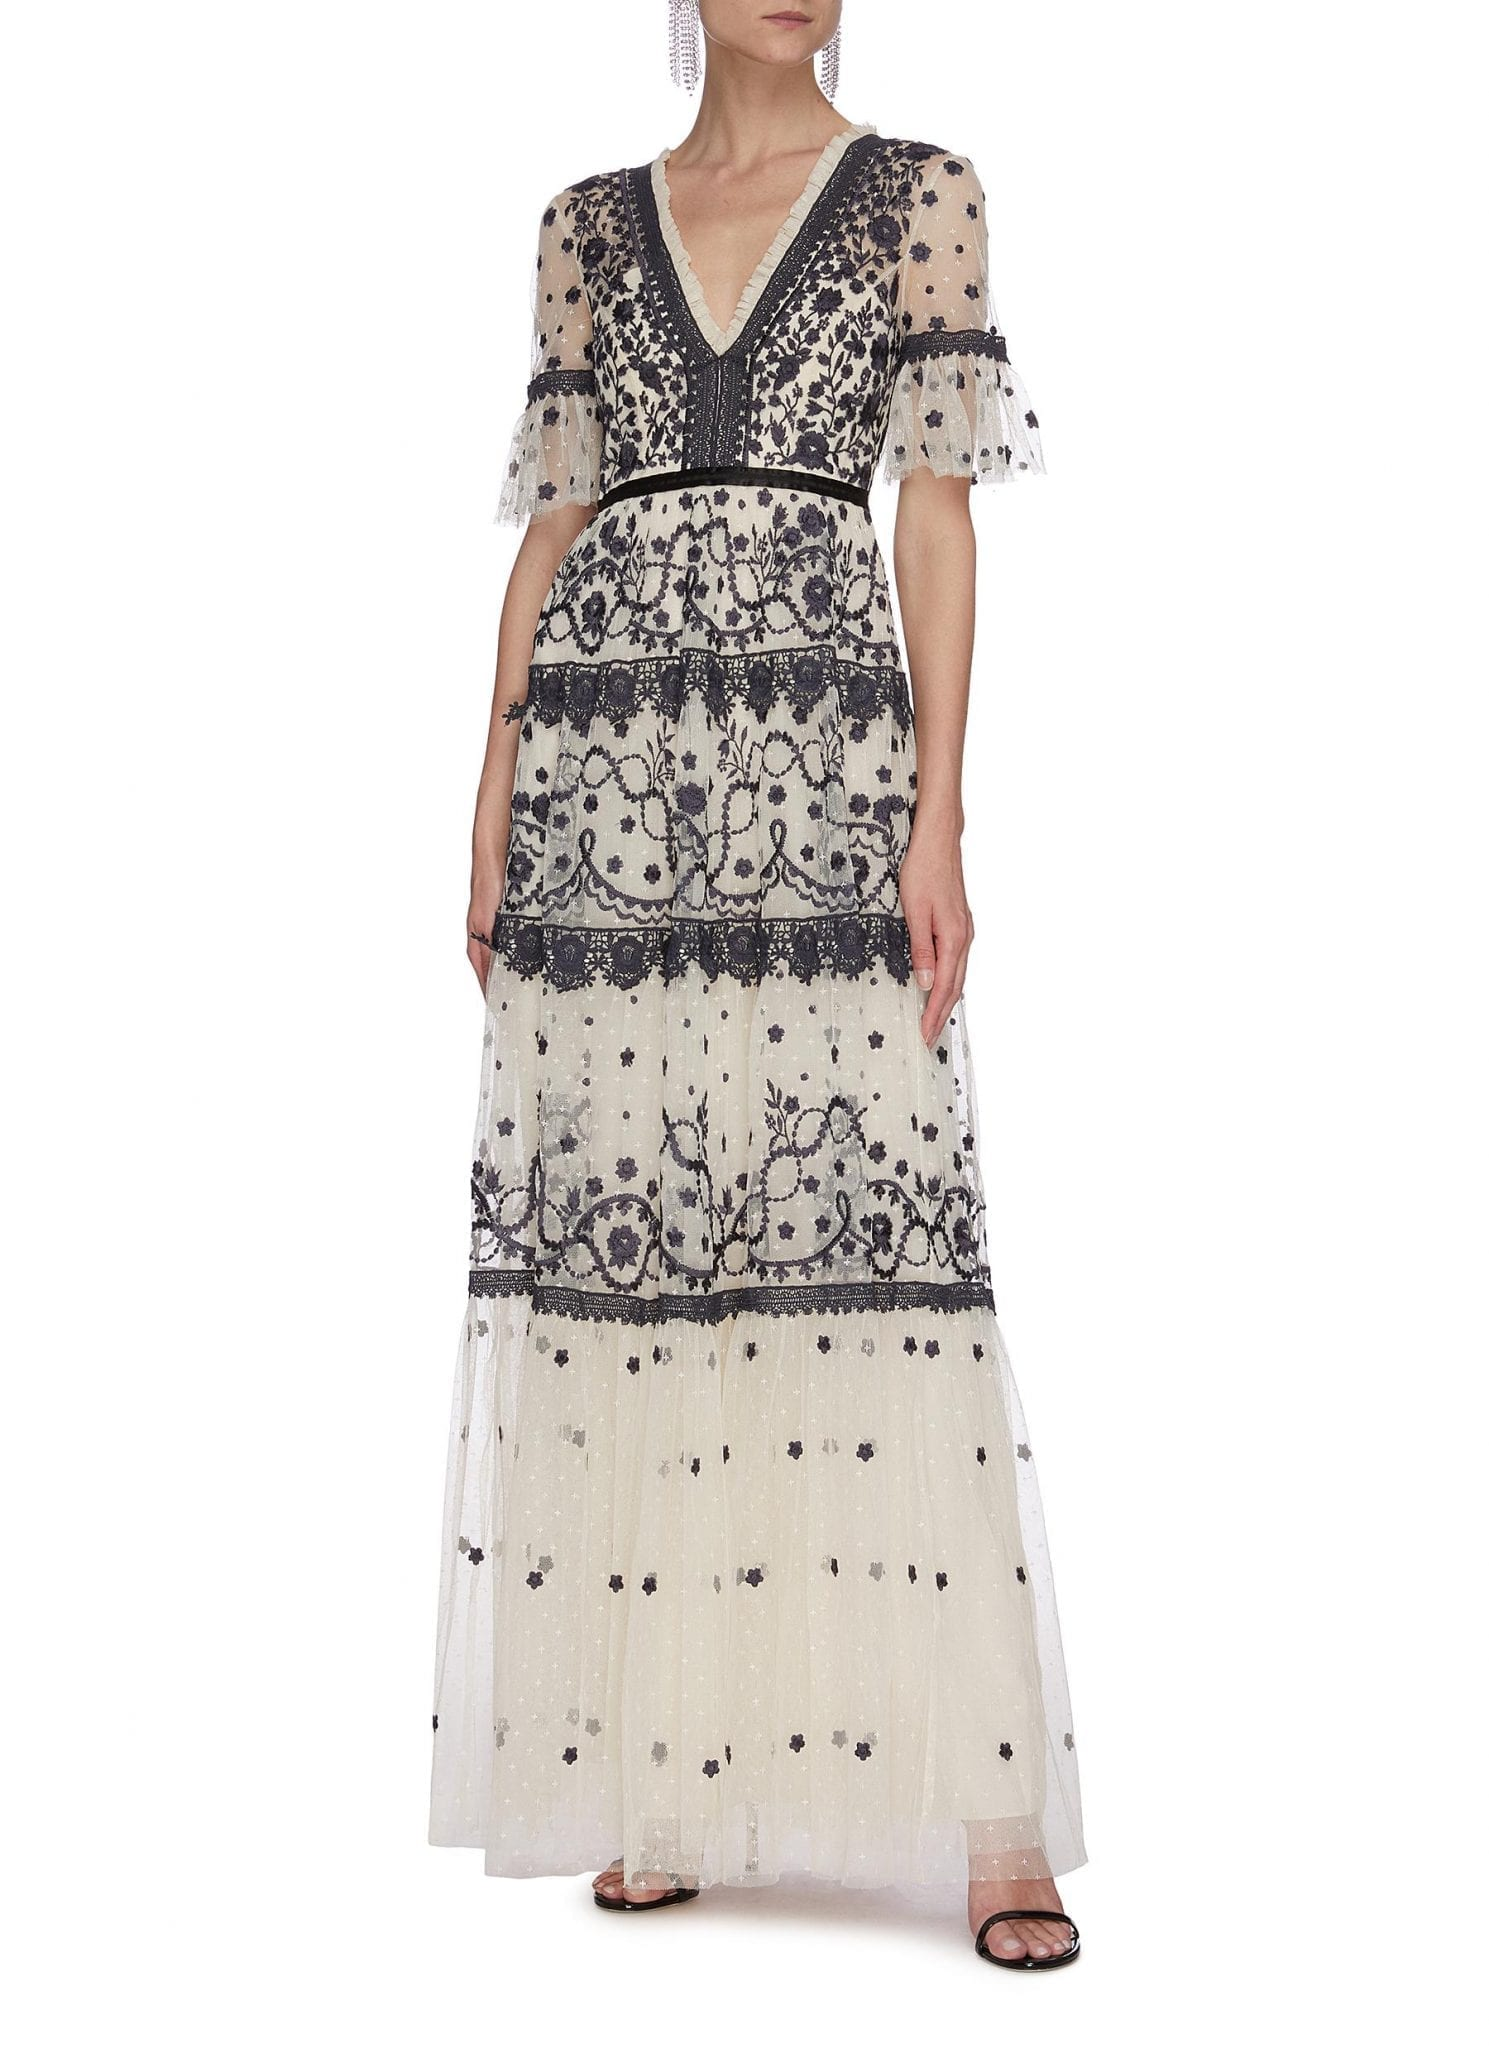 NEEDLE & THREAD 'Midsummer' Lace Trim Floral Embroidered Short Sleeve Gown